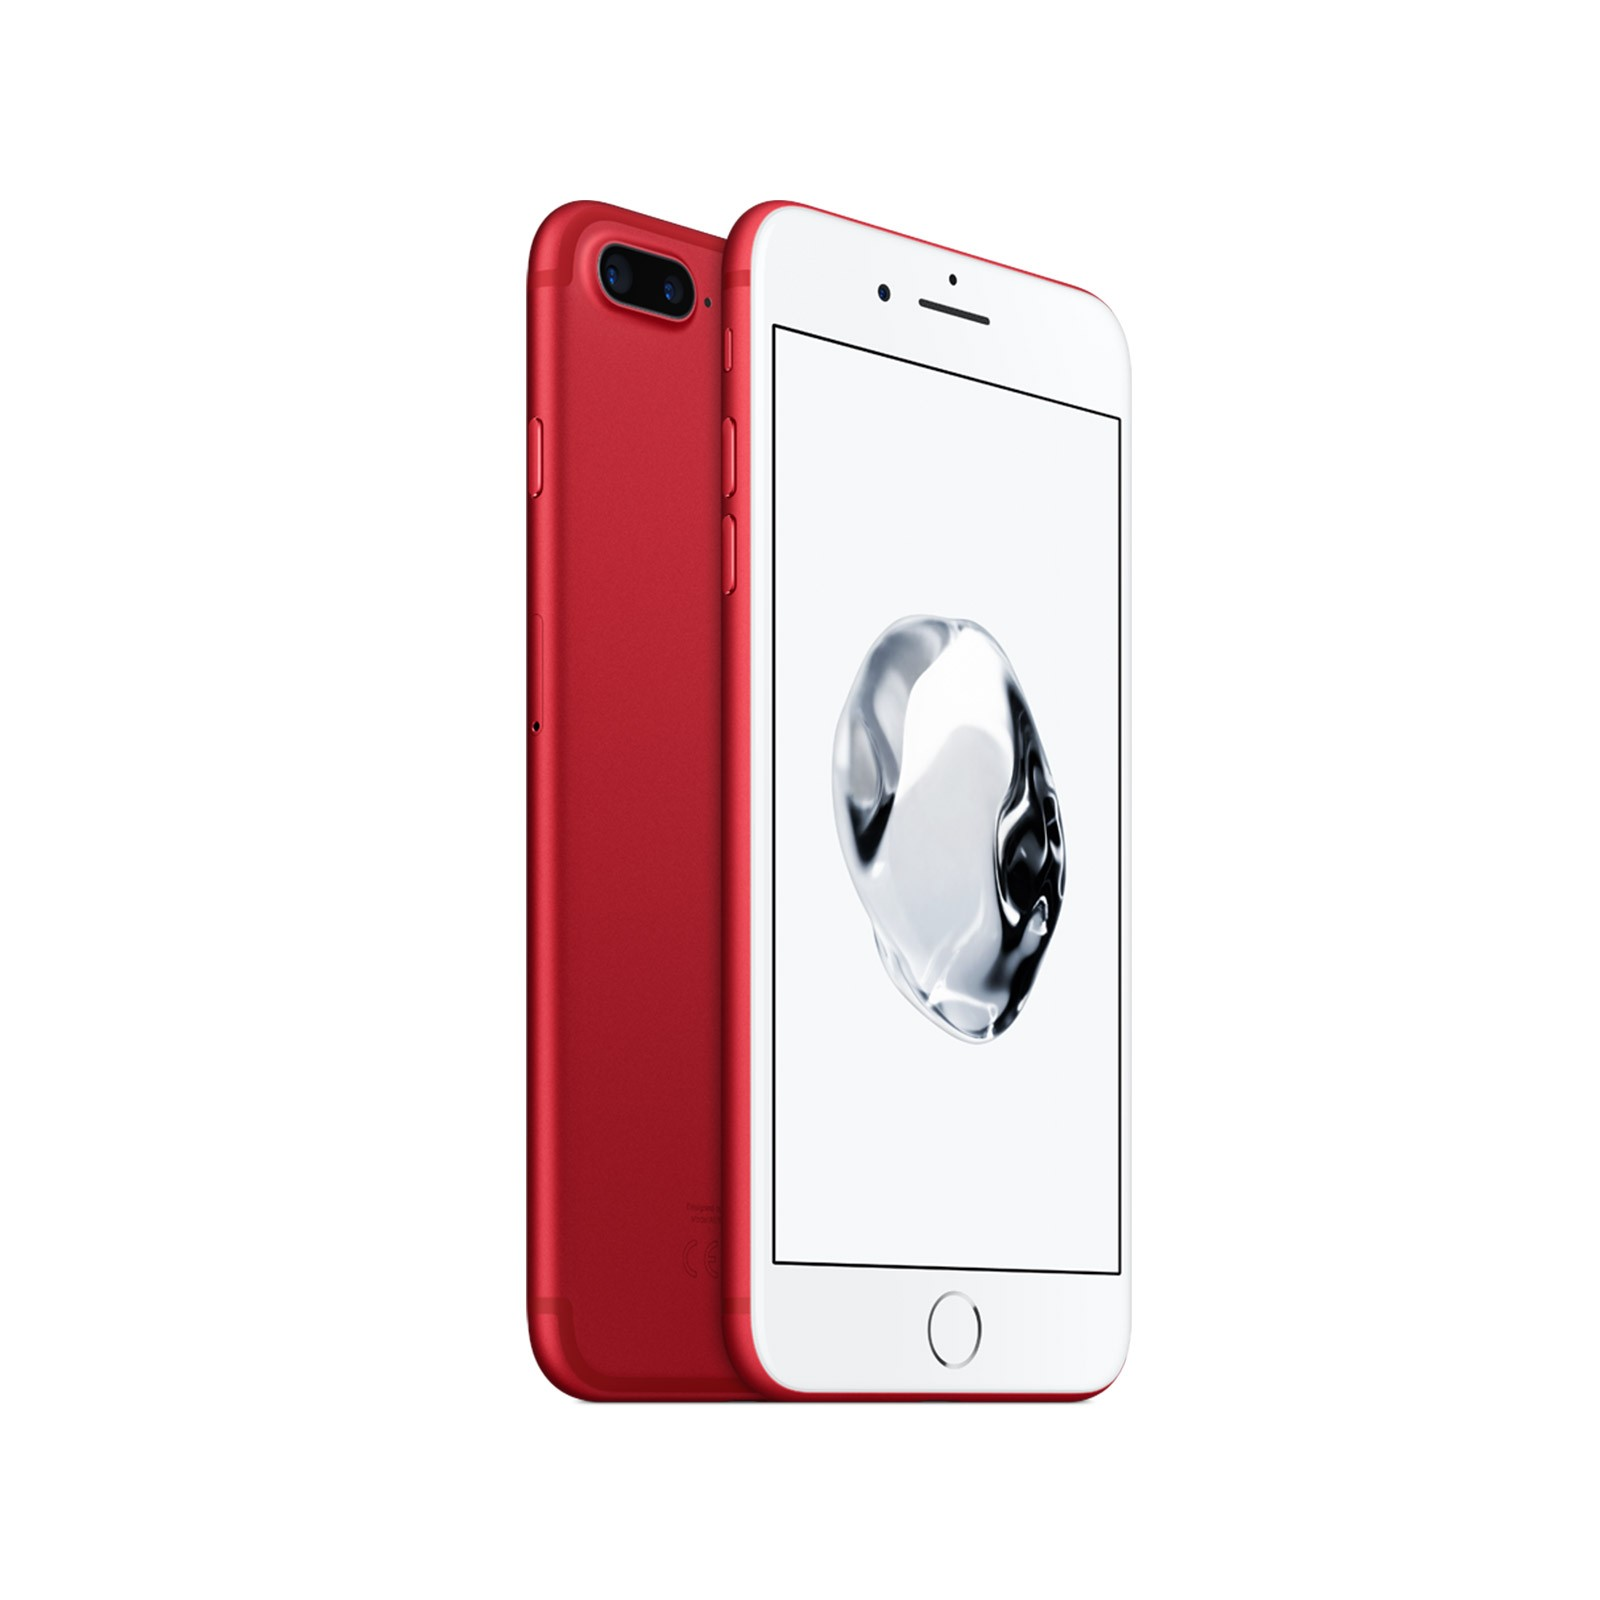 iPhone 7 Plus Red - trangthienlong.com.vn